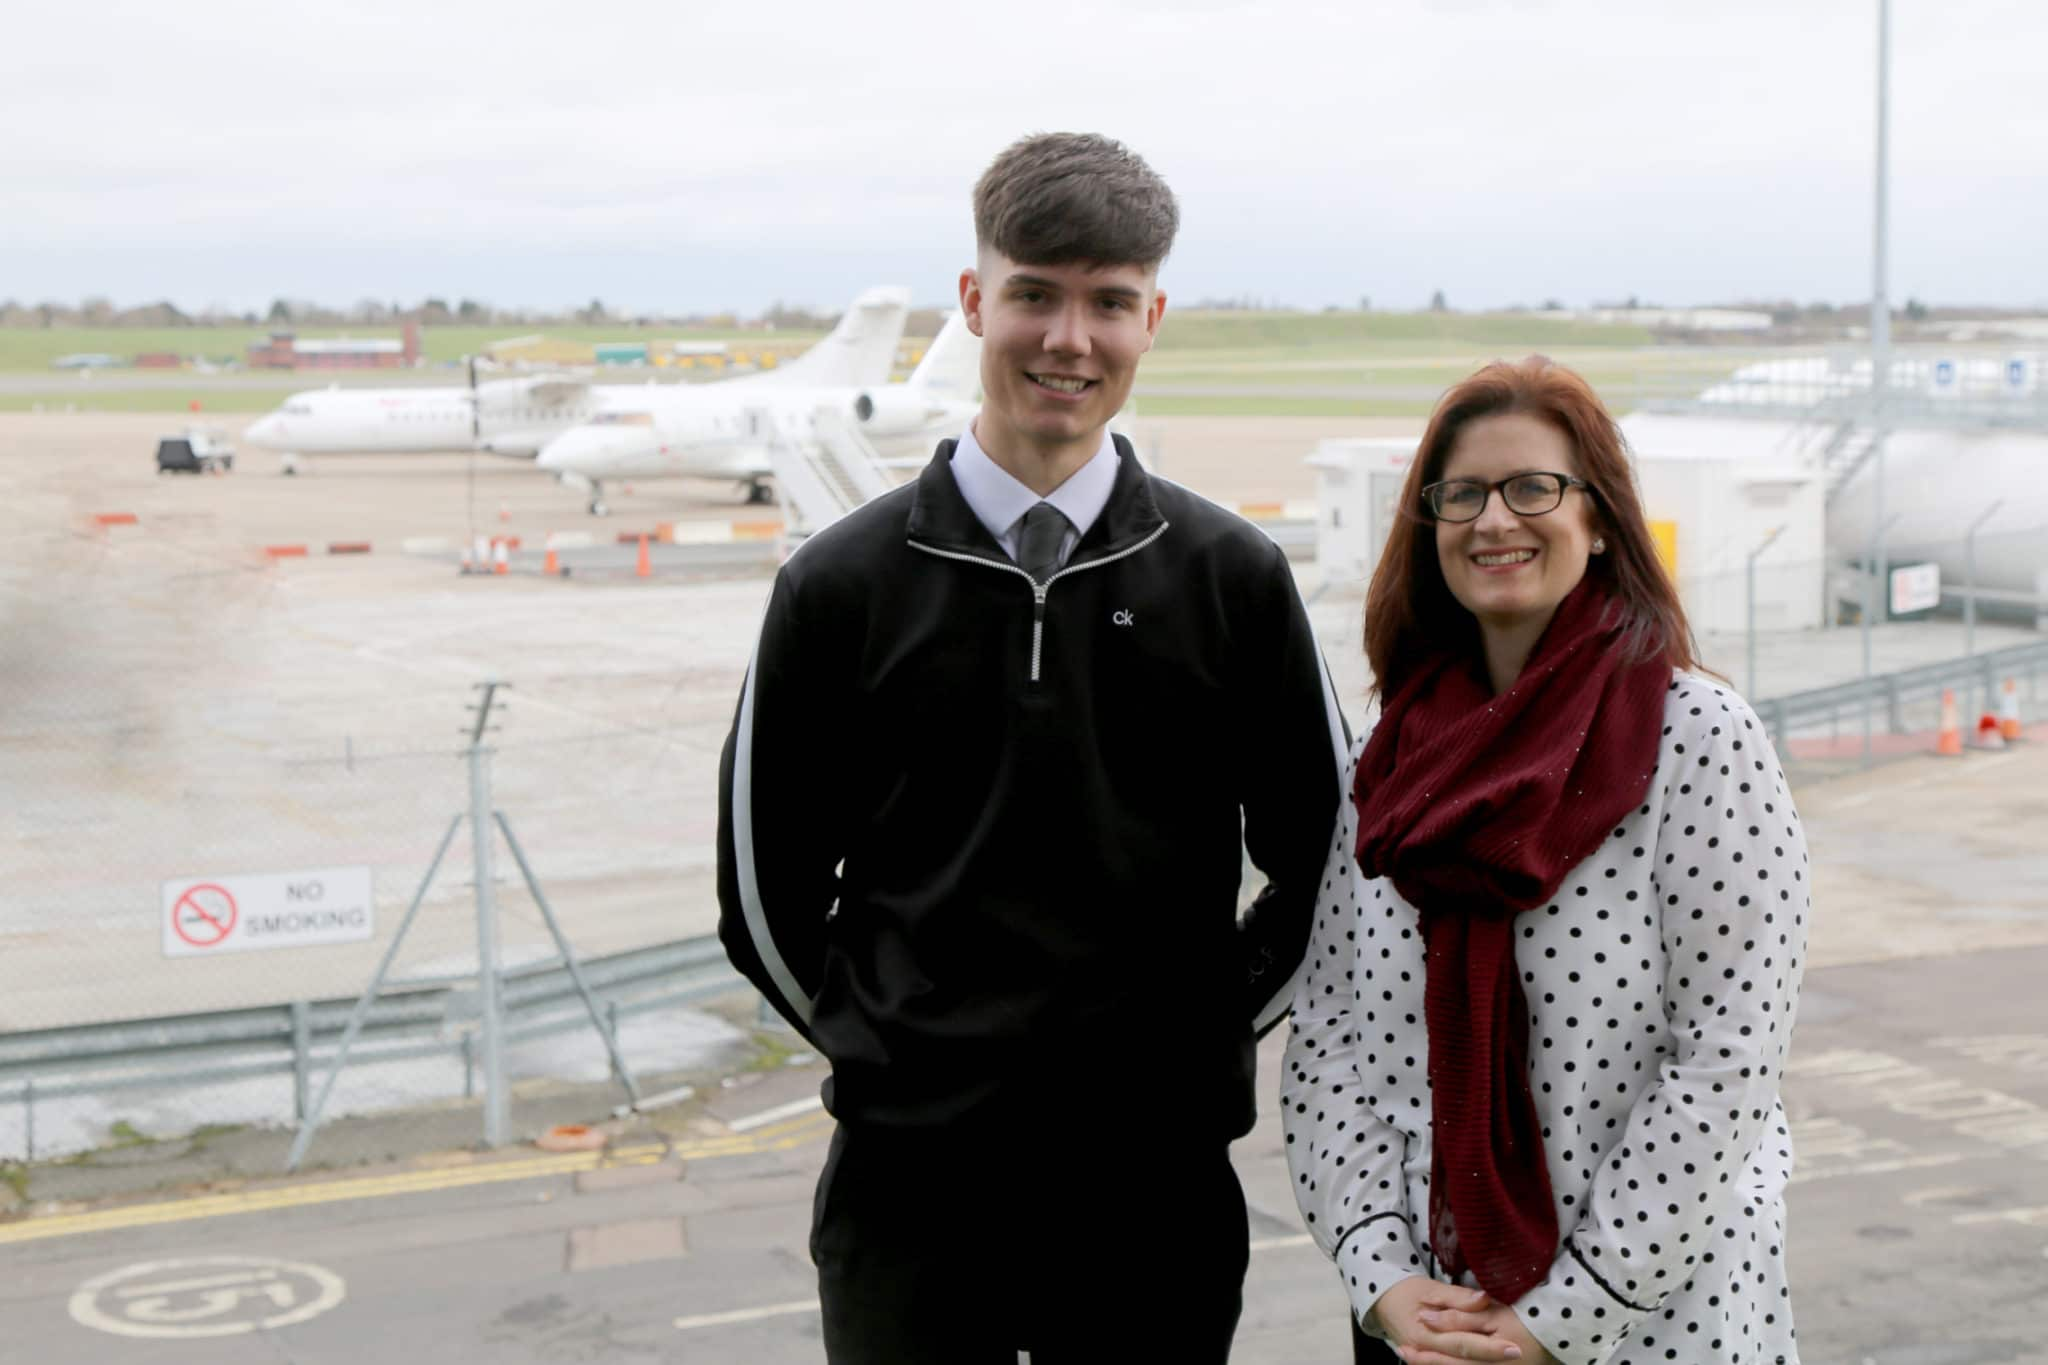 Joe stands with Jane in front of aircrafts at airport